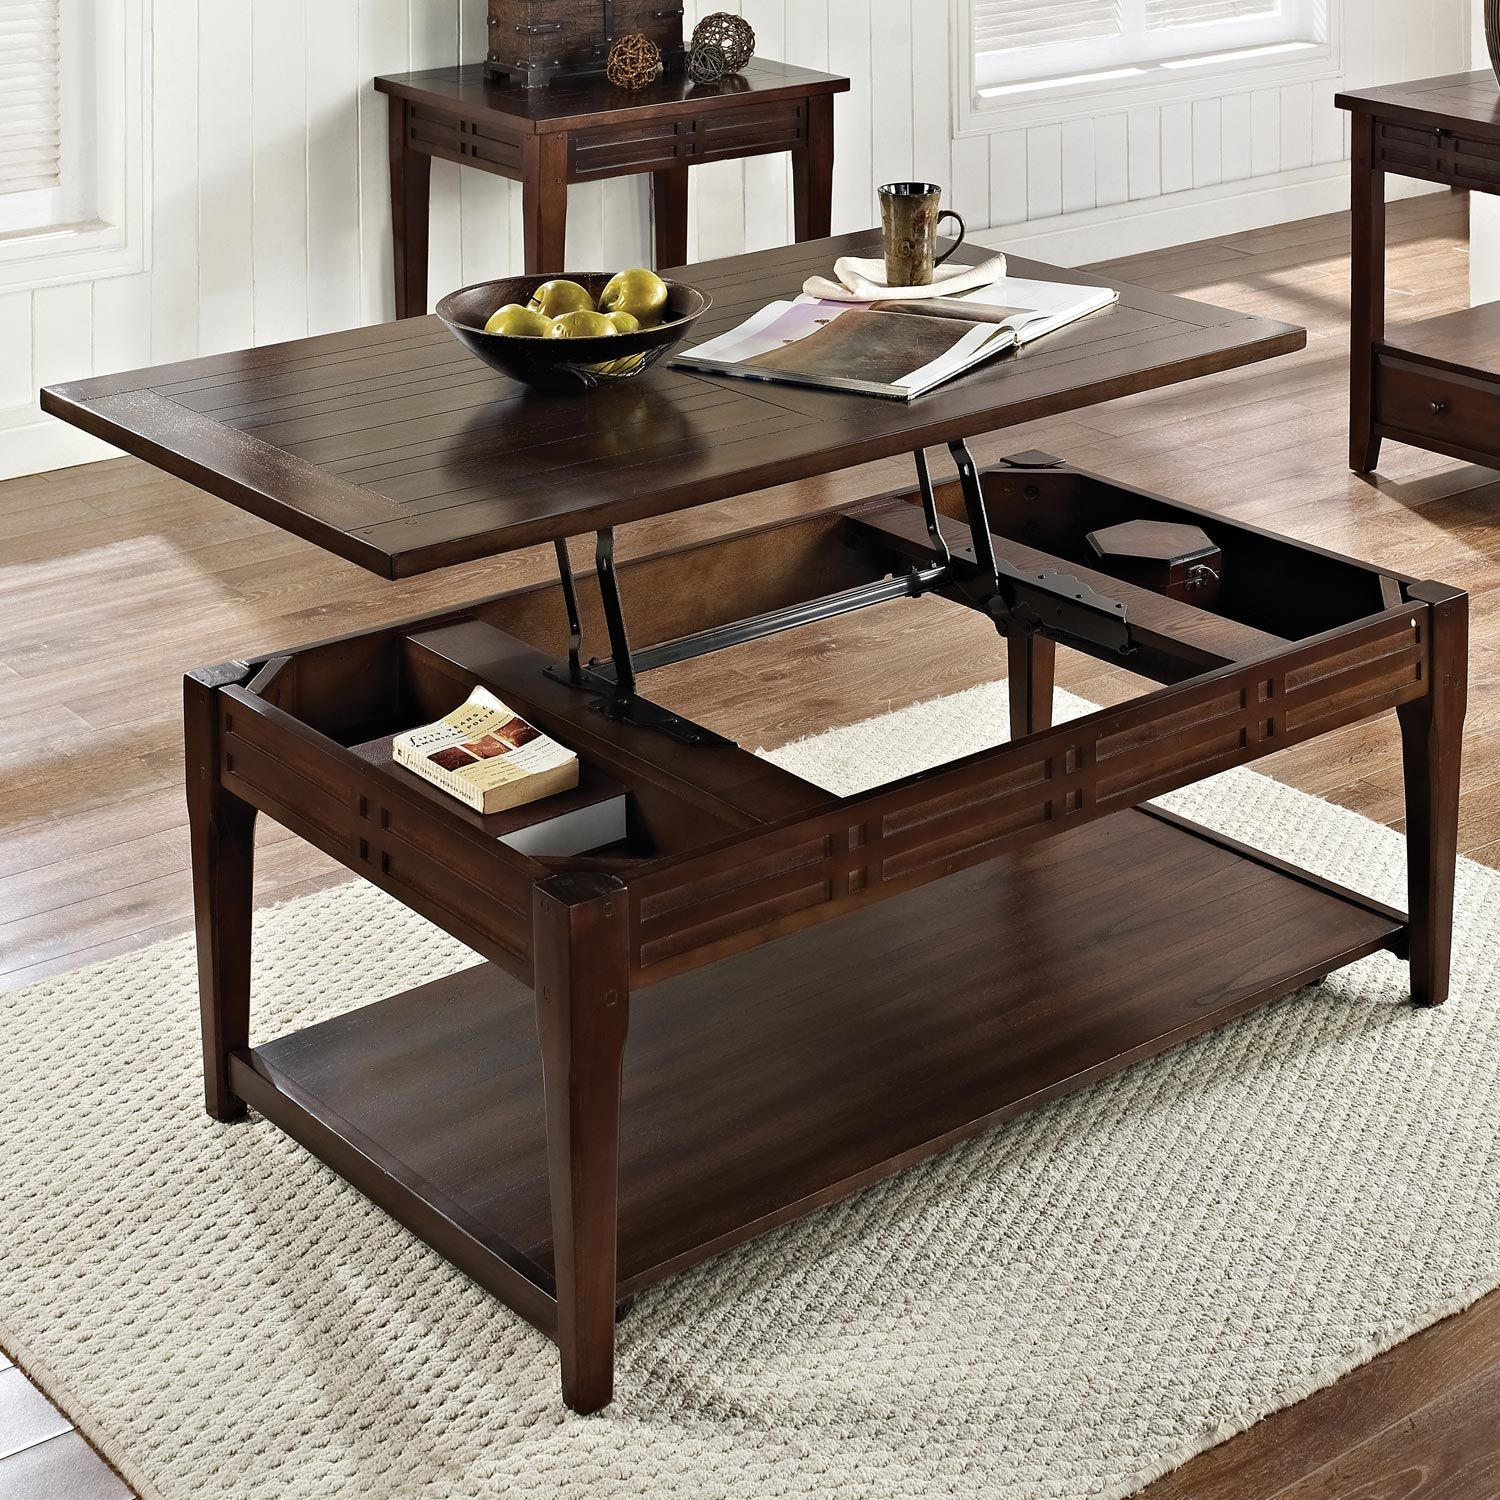 Found It At Www Dcgs Crestline Tail Table Lift Top Distressed Walnut Dcg S 314 No Tax And Shipping Fees